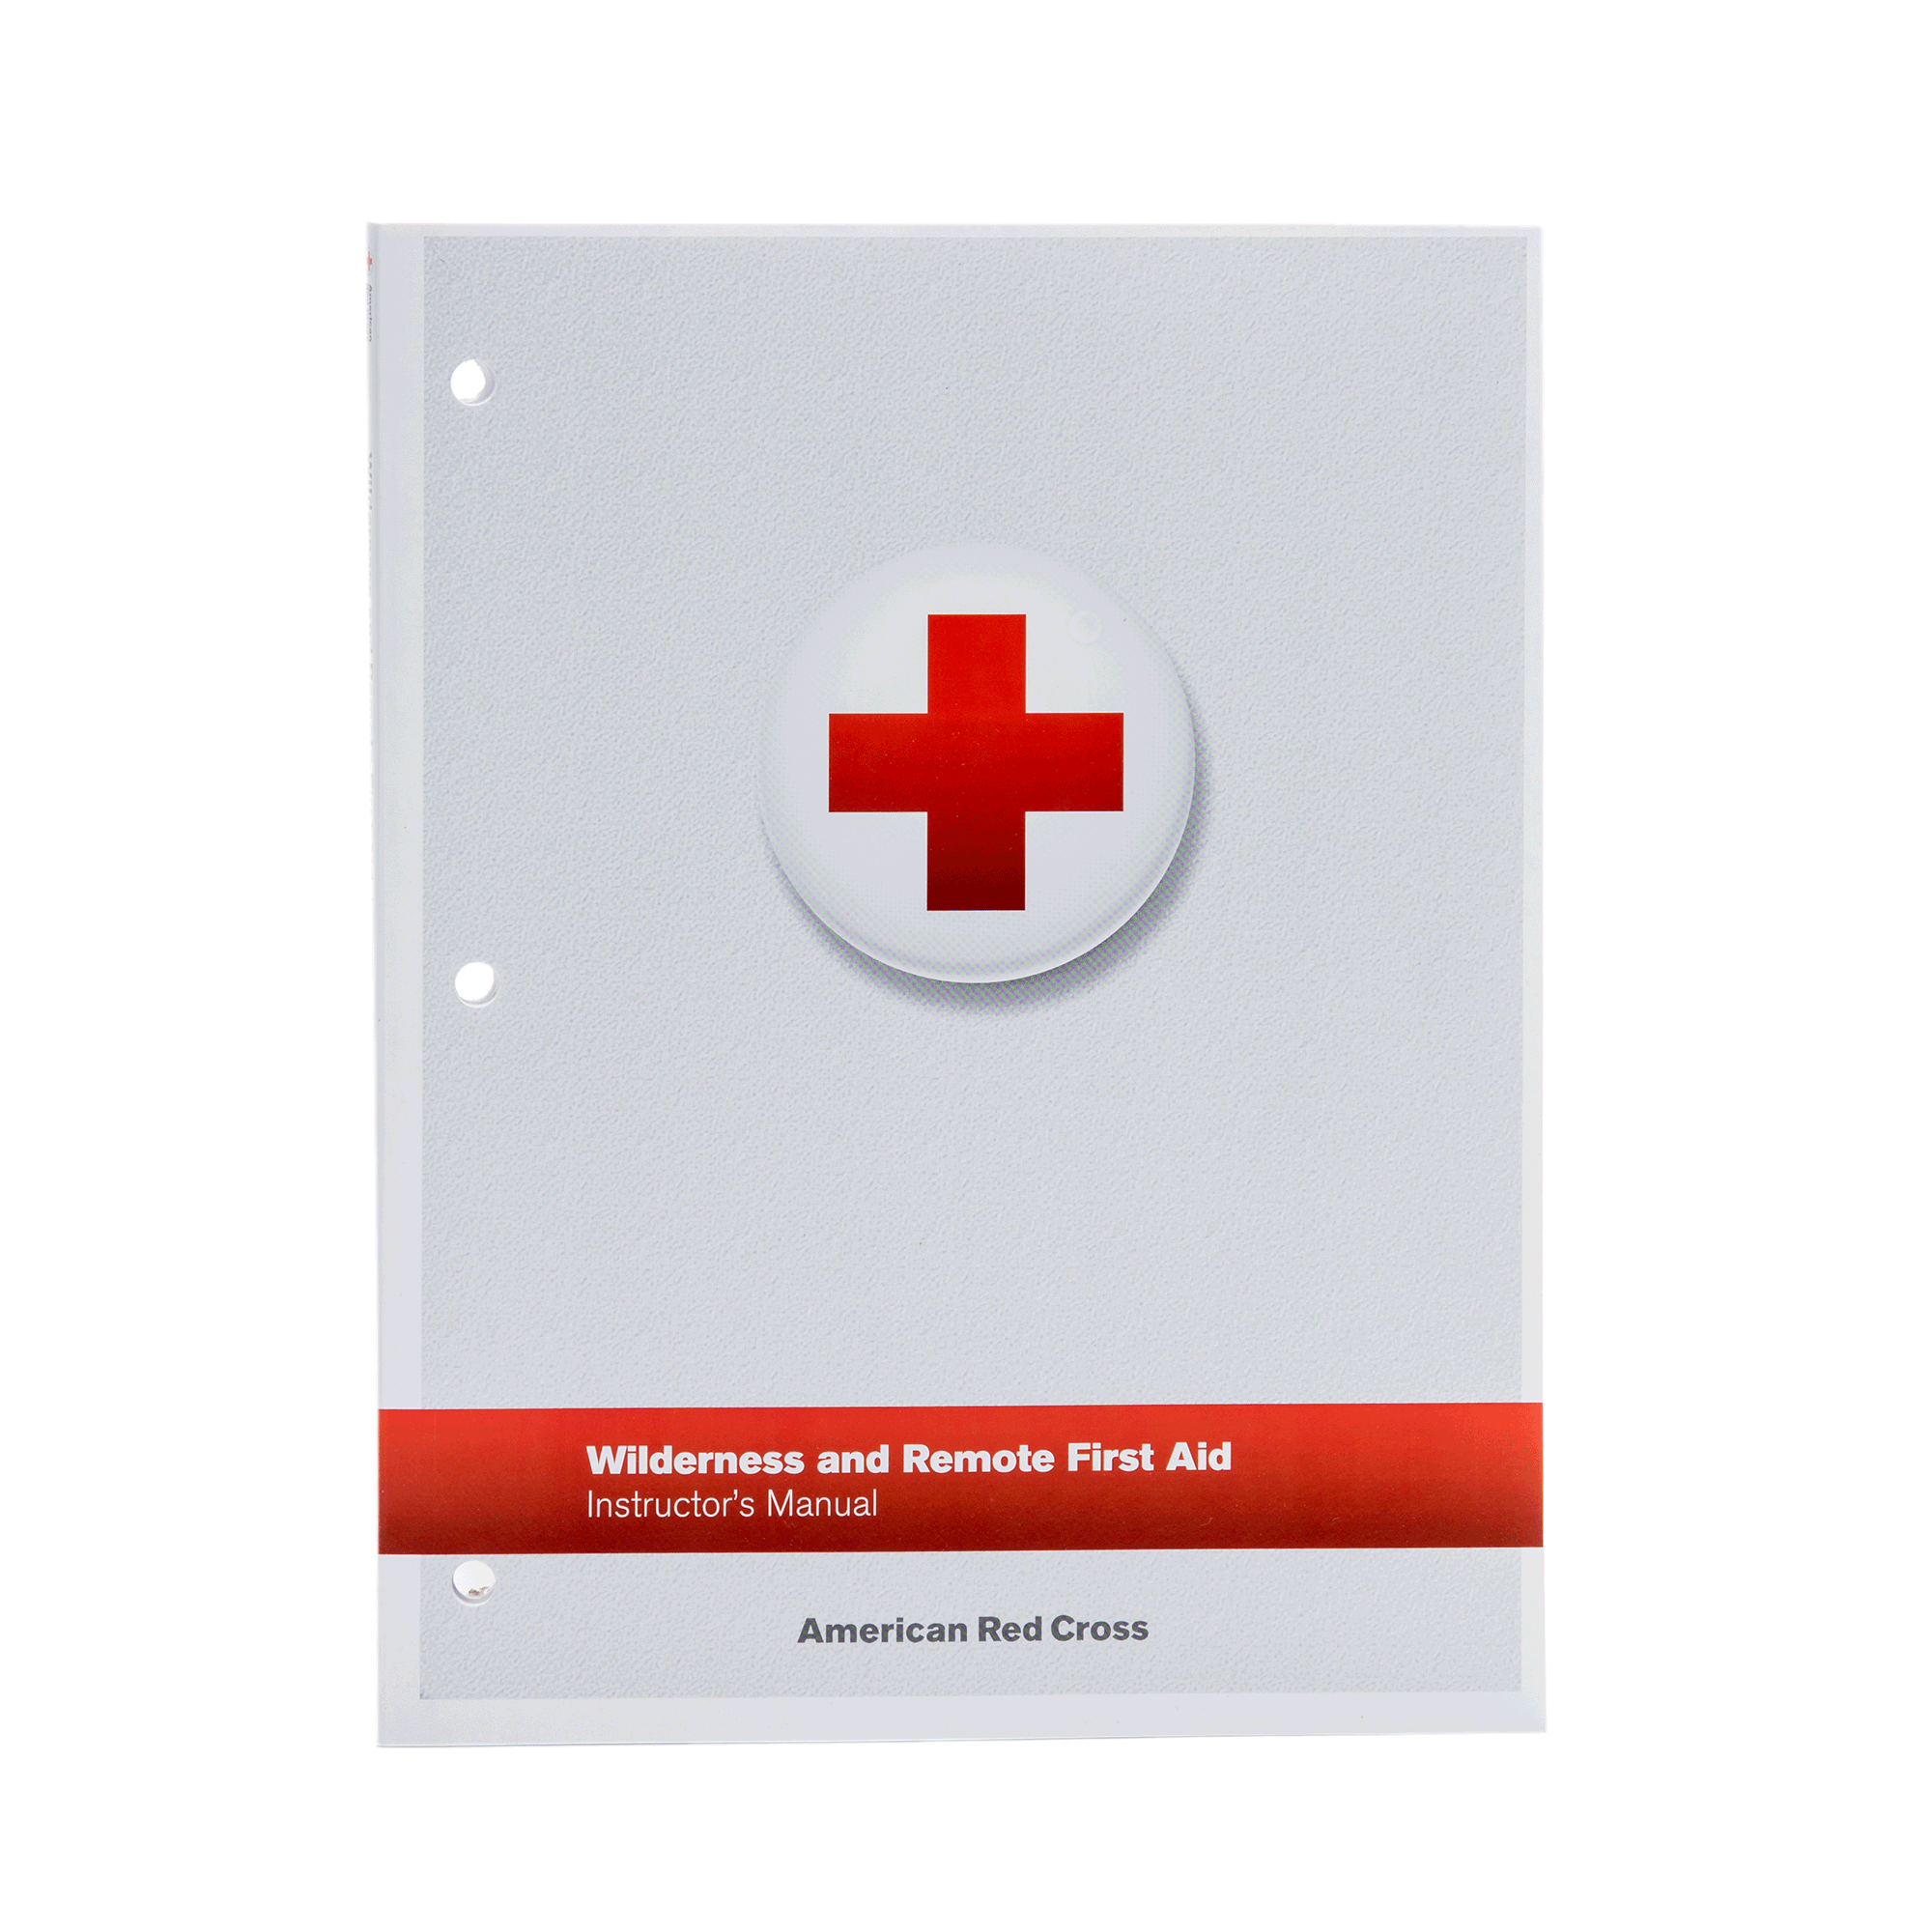 American Red Cross Wilderness First Aid Manual User Guide Manual